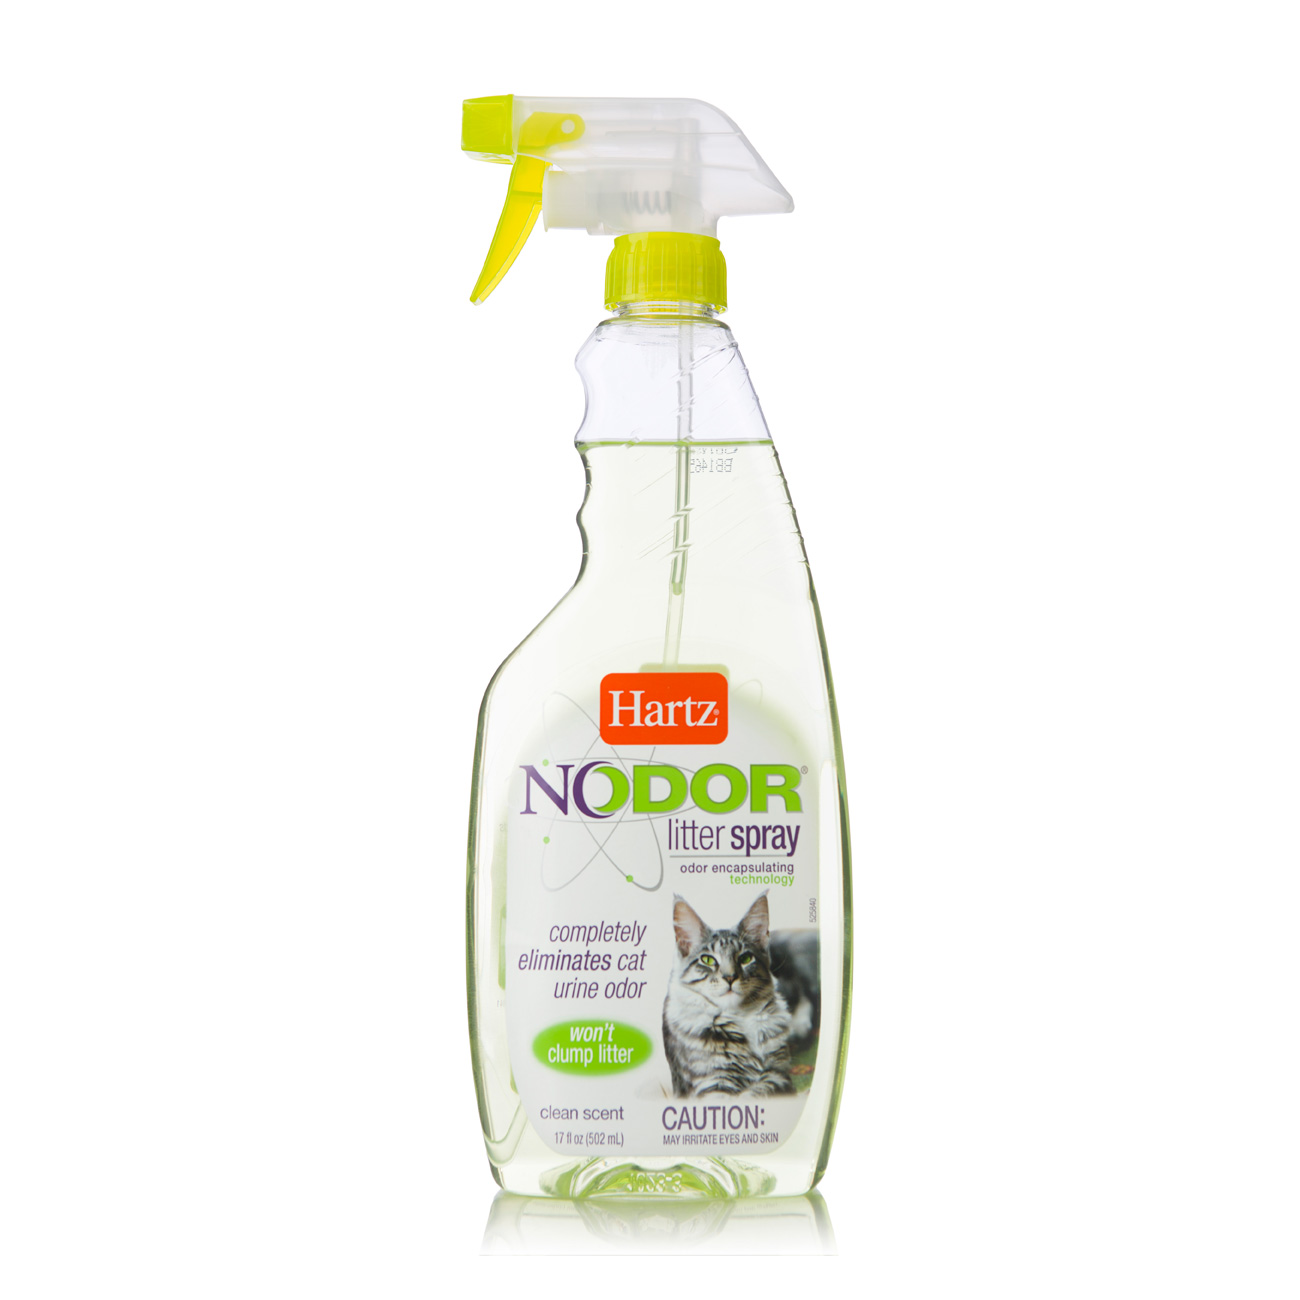 Scented spray for eliminating cat odors like urine, Hartz SKU 3270011443